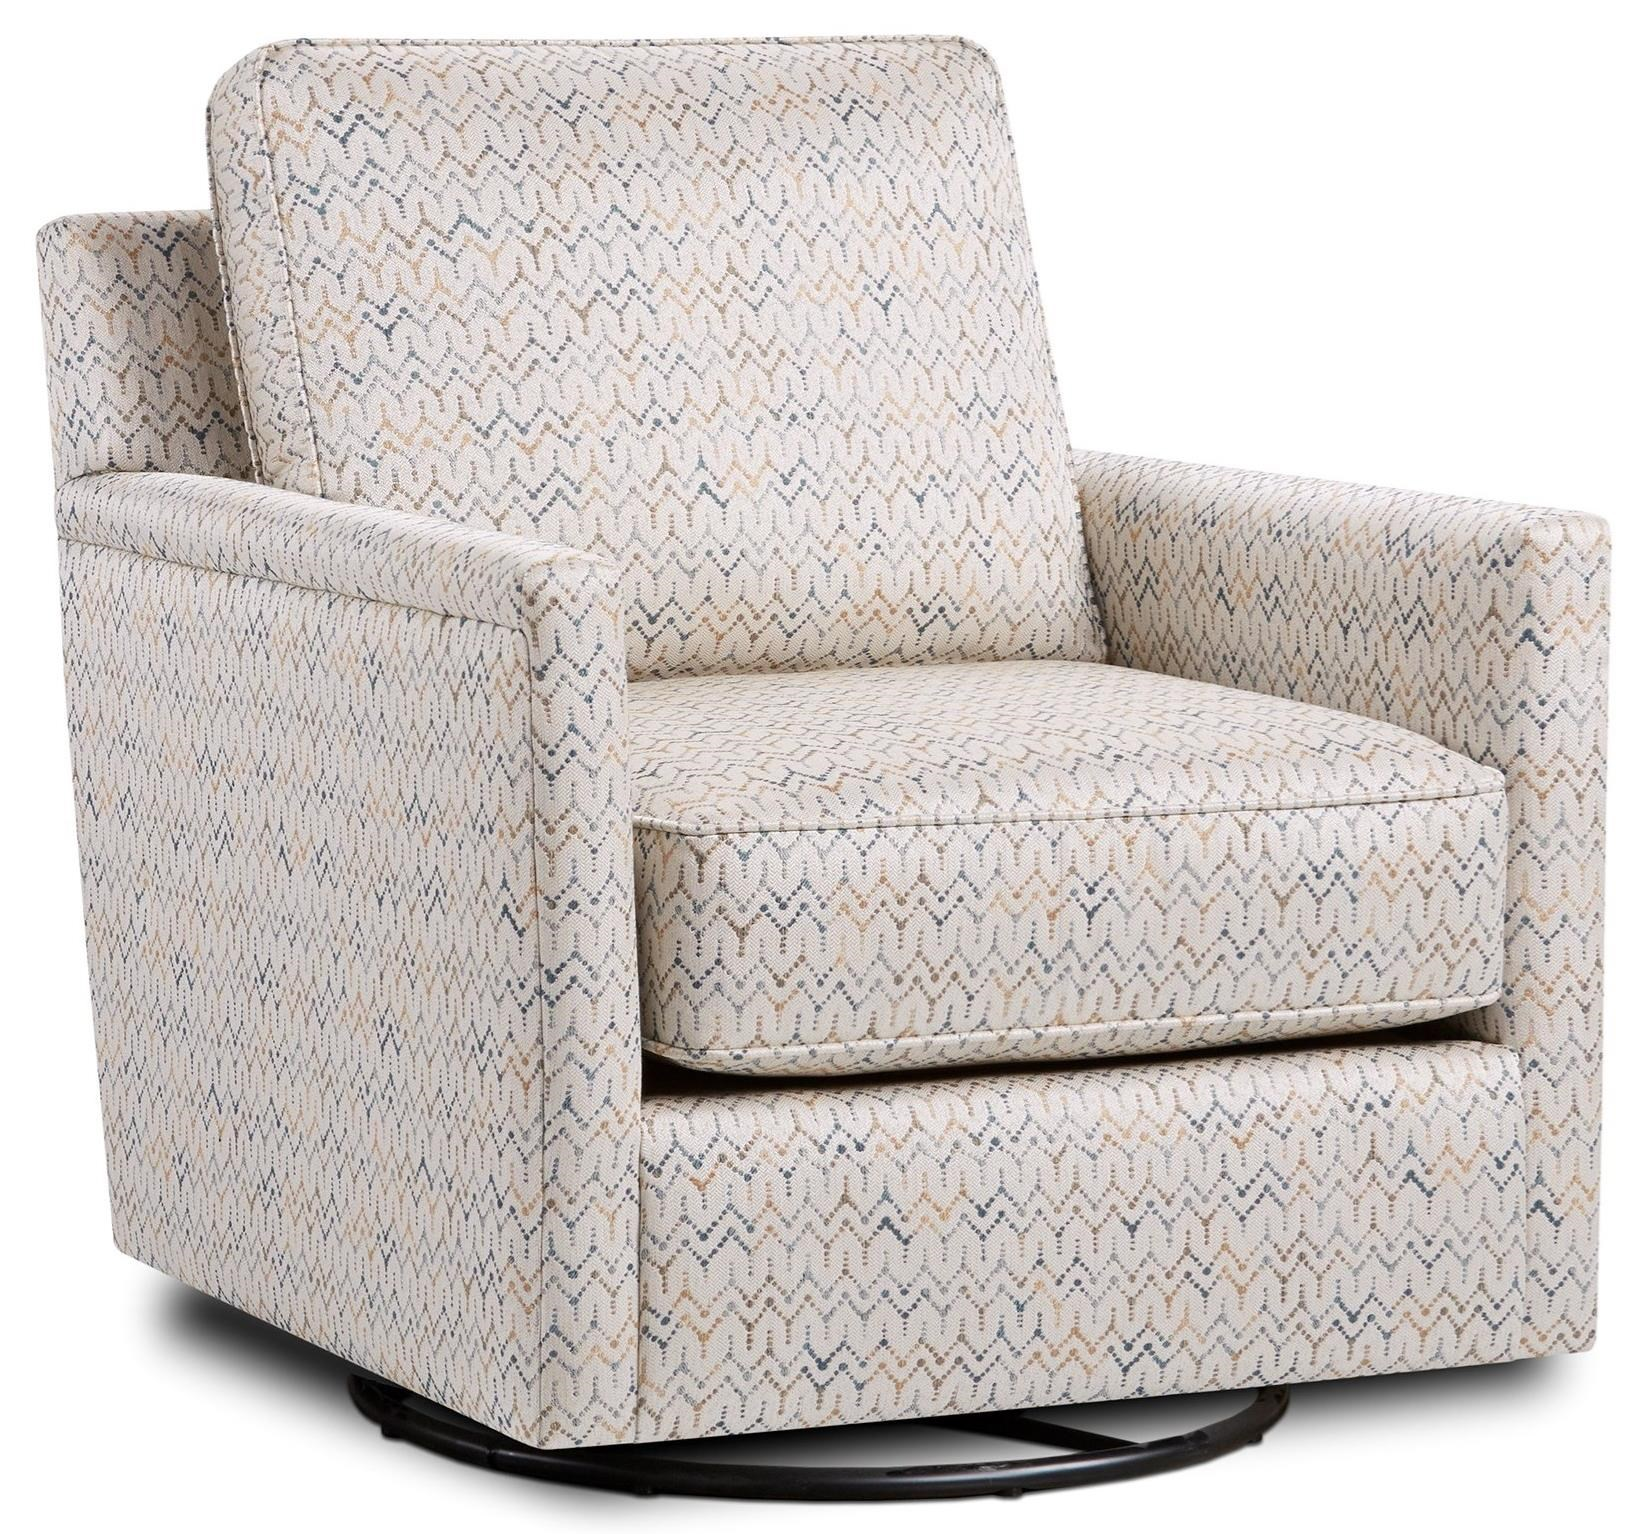 21-02 Swivel Glider Chair by Fusion Furniture at Wilson's Furniture